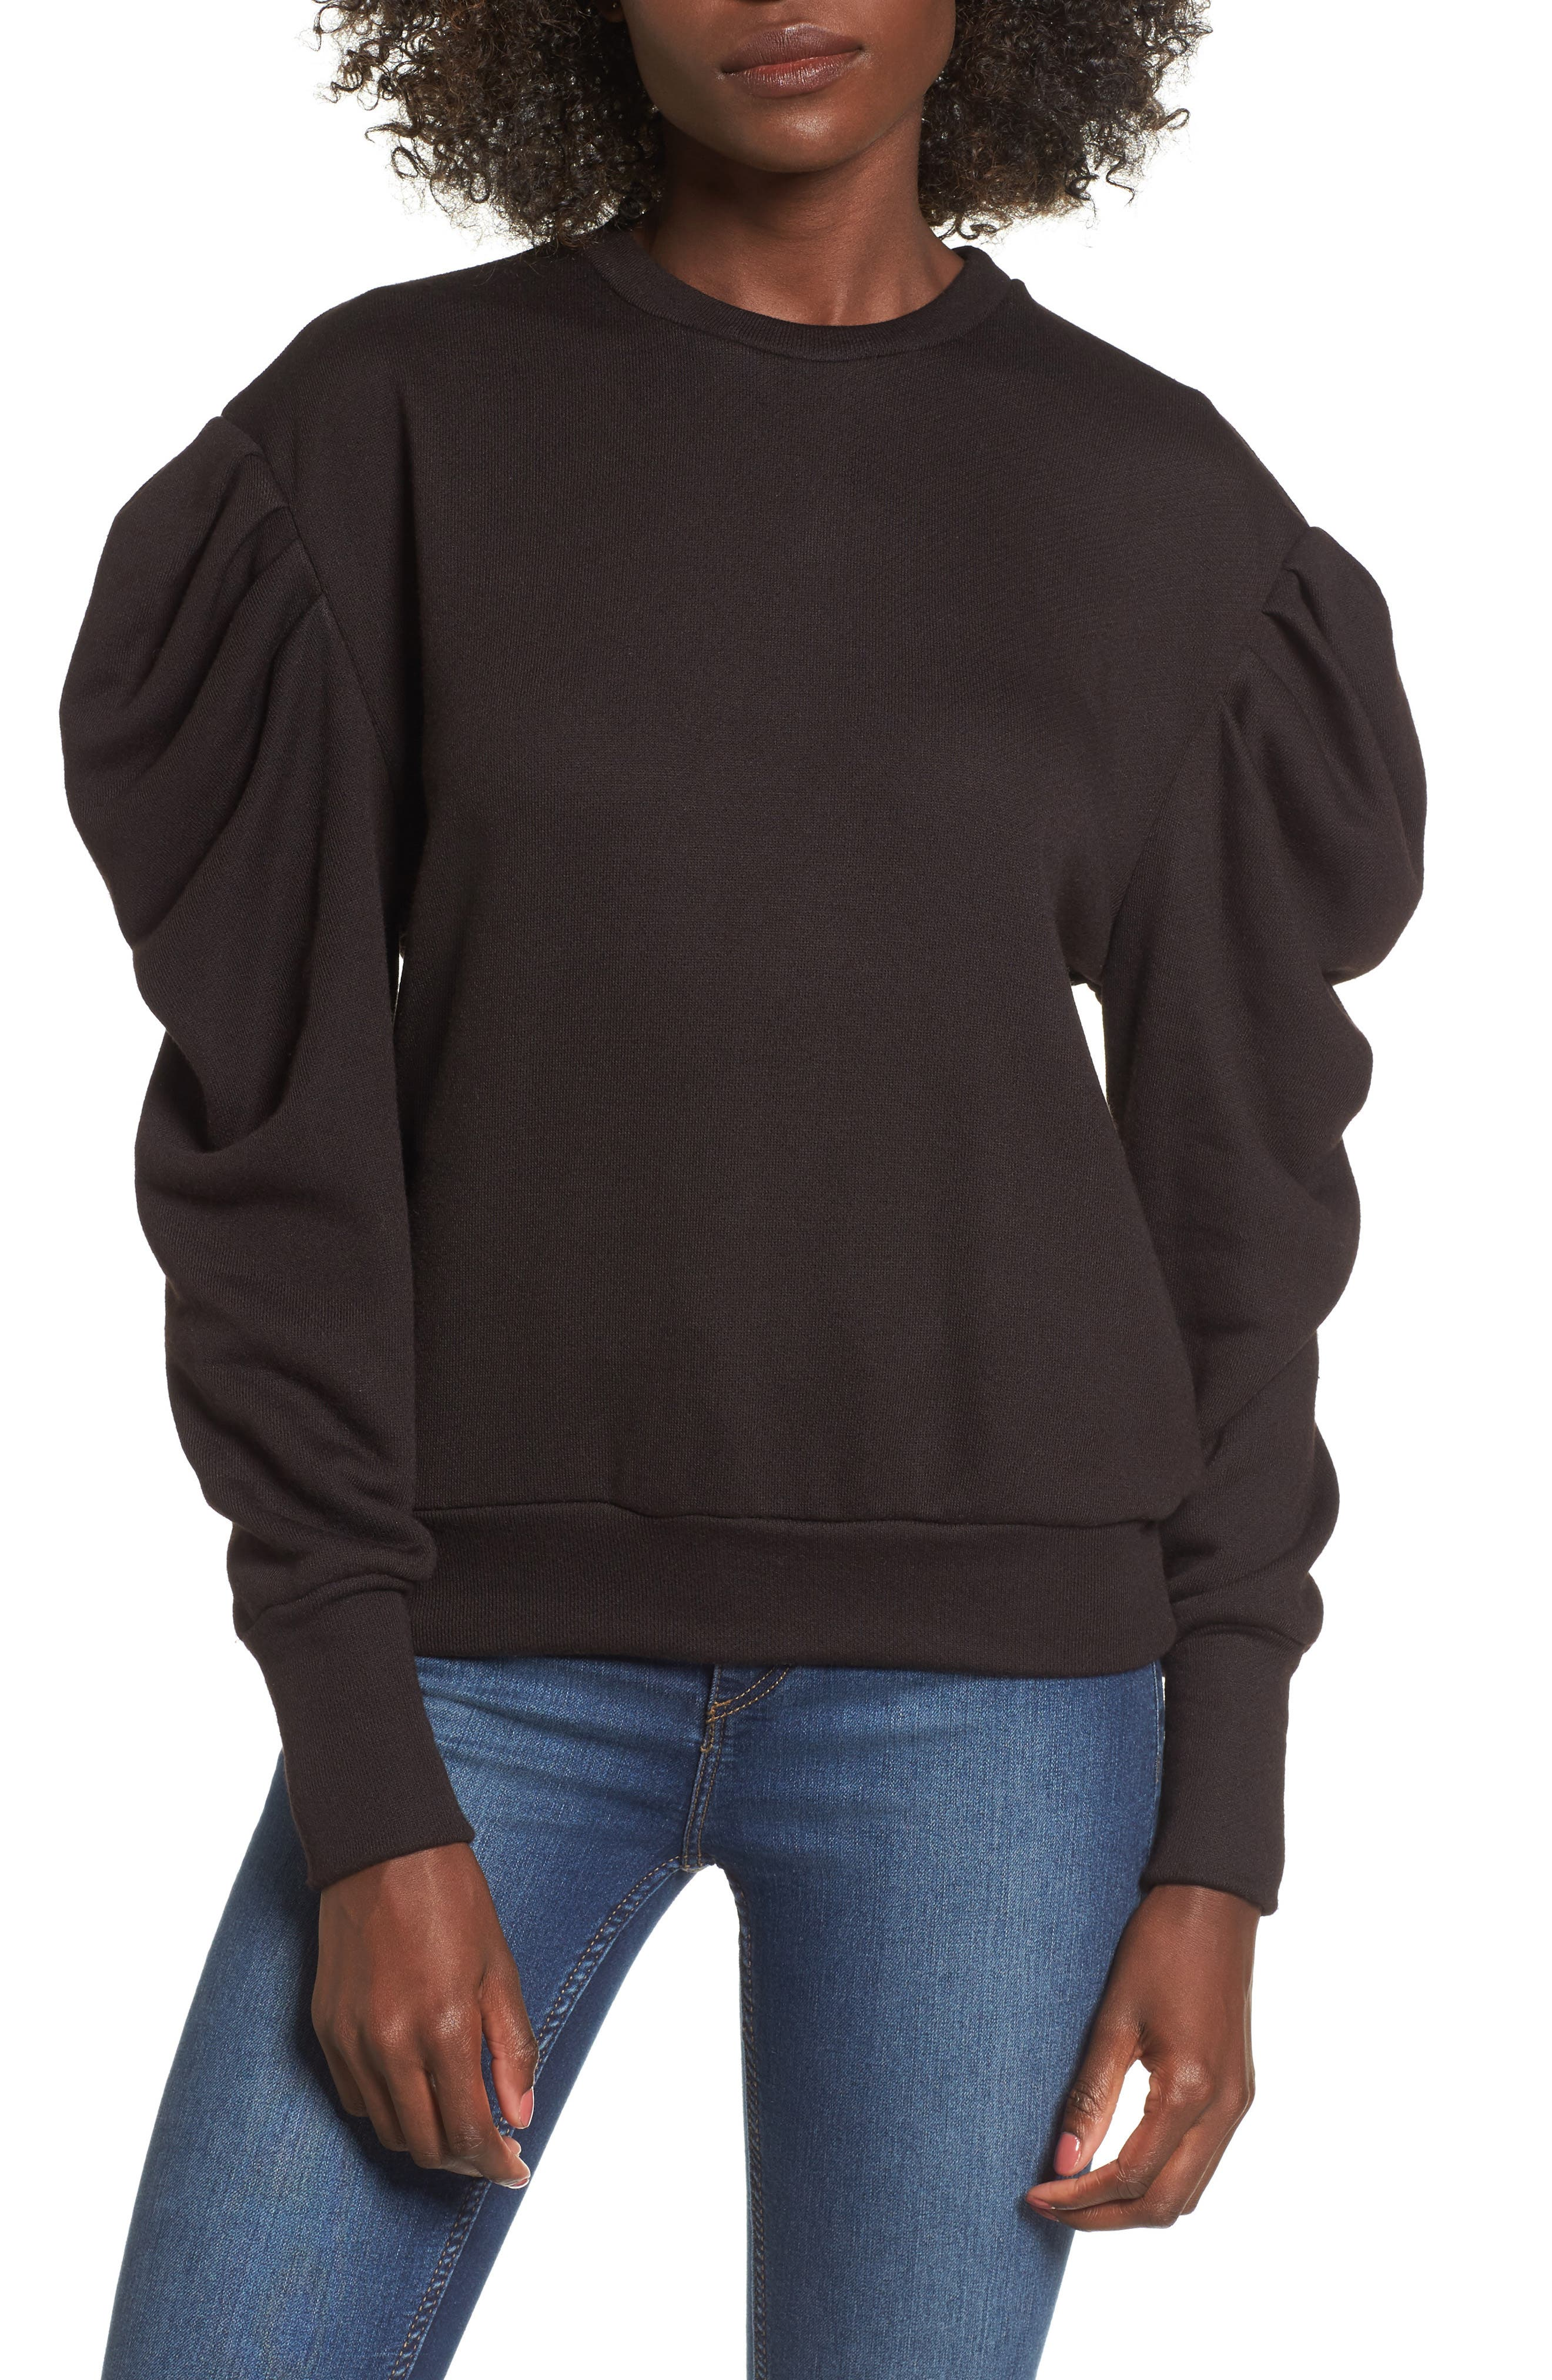 James Balloon Sleeve Sweatshirt,                             Main thumbnail 1, color,                             001